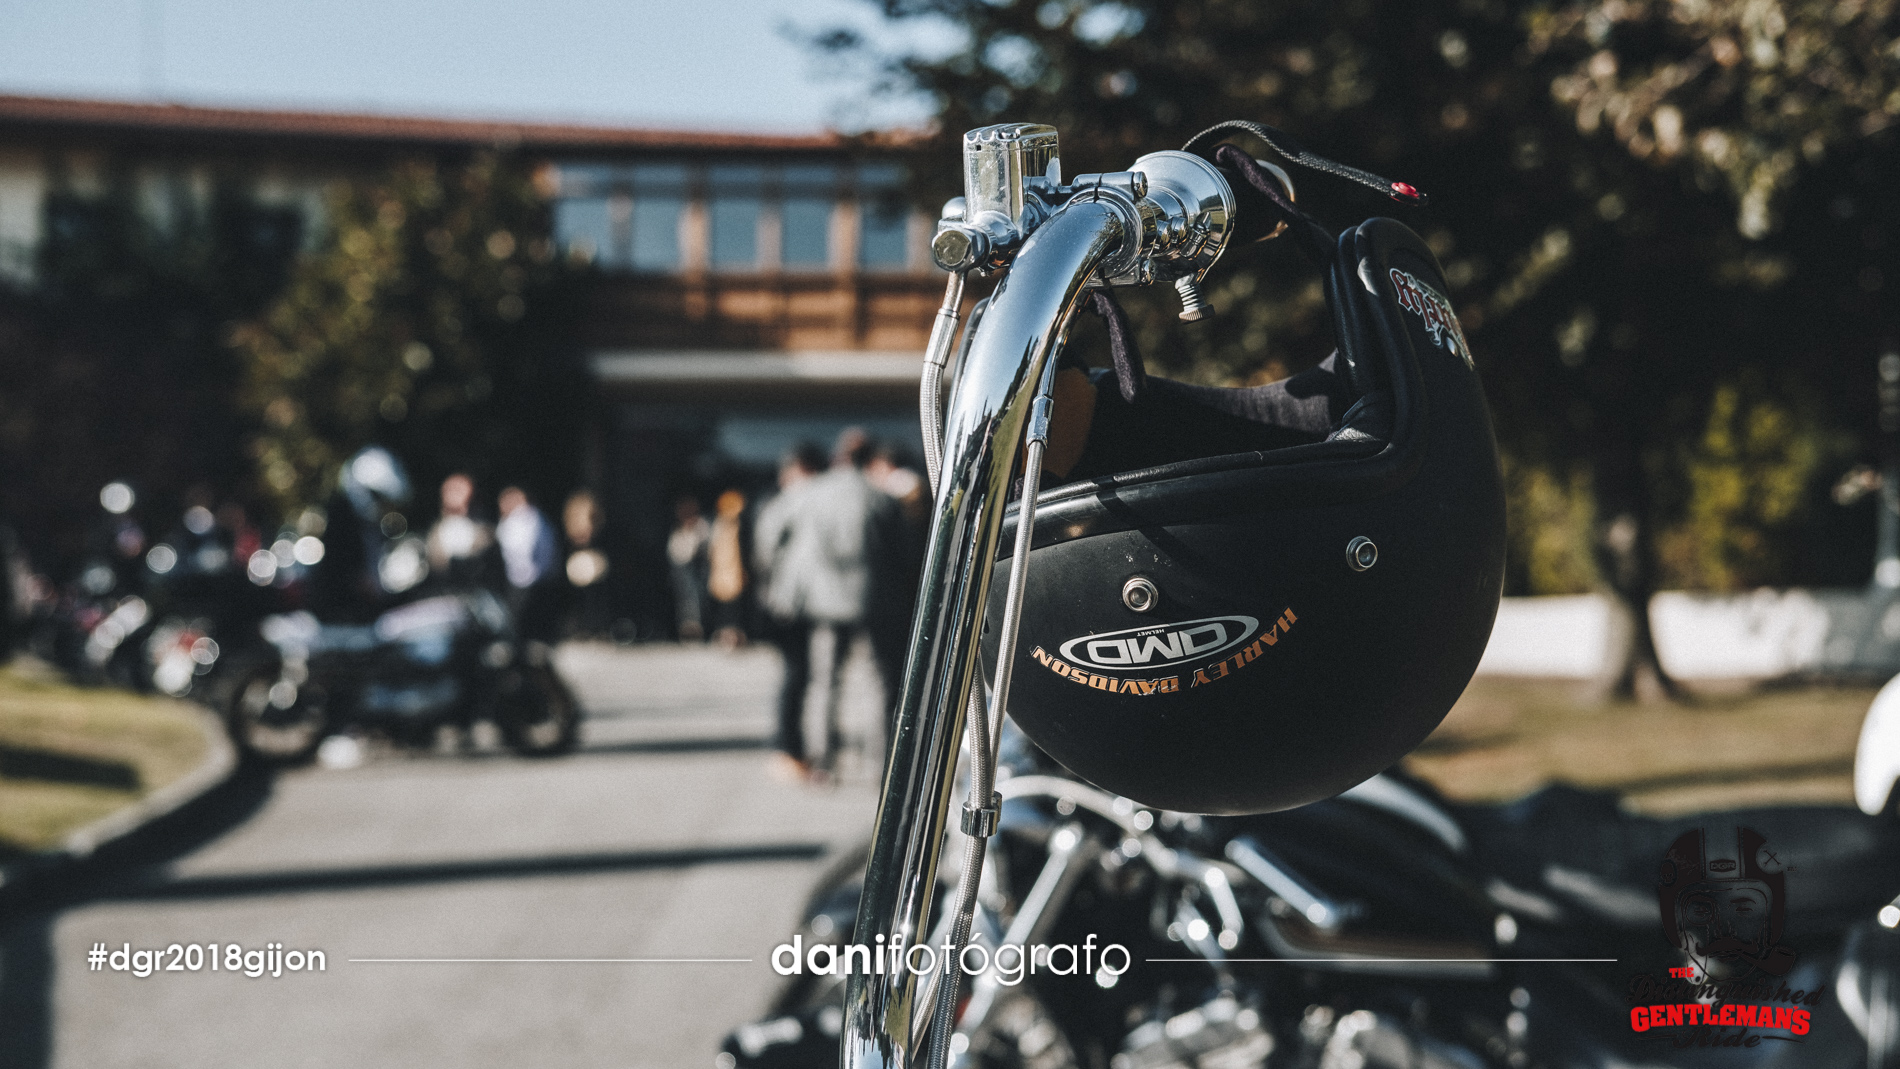 dgr 2018 gijon Distinguished Gentleman's Ride